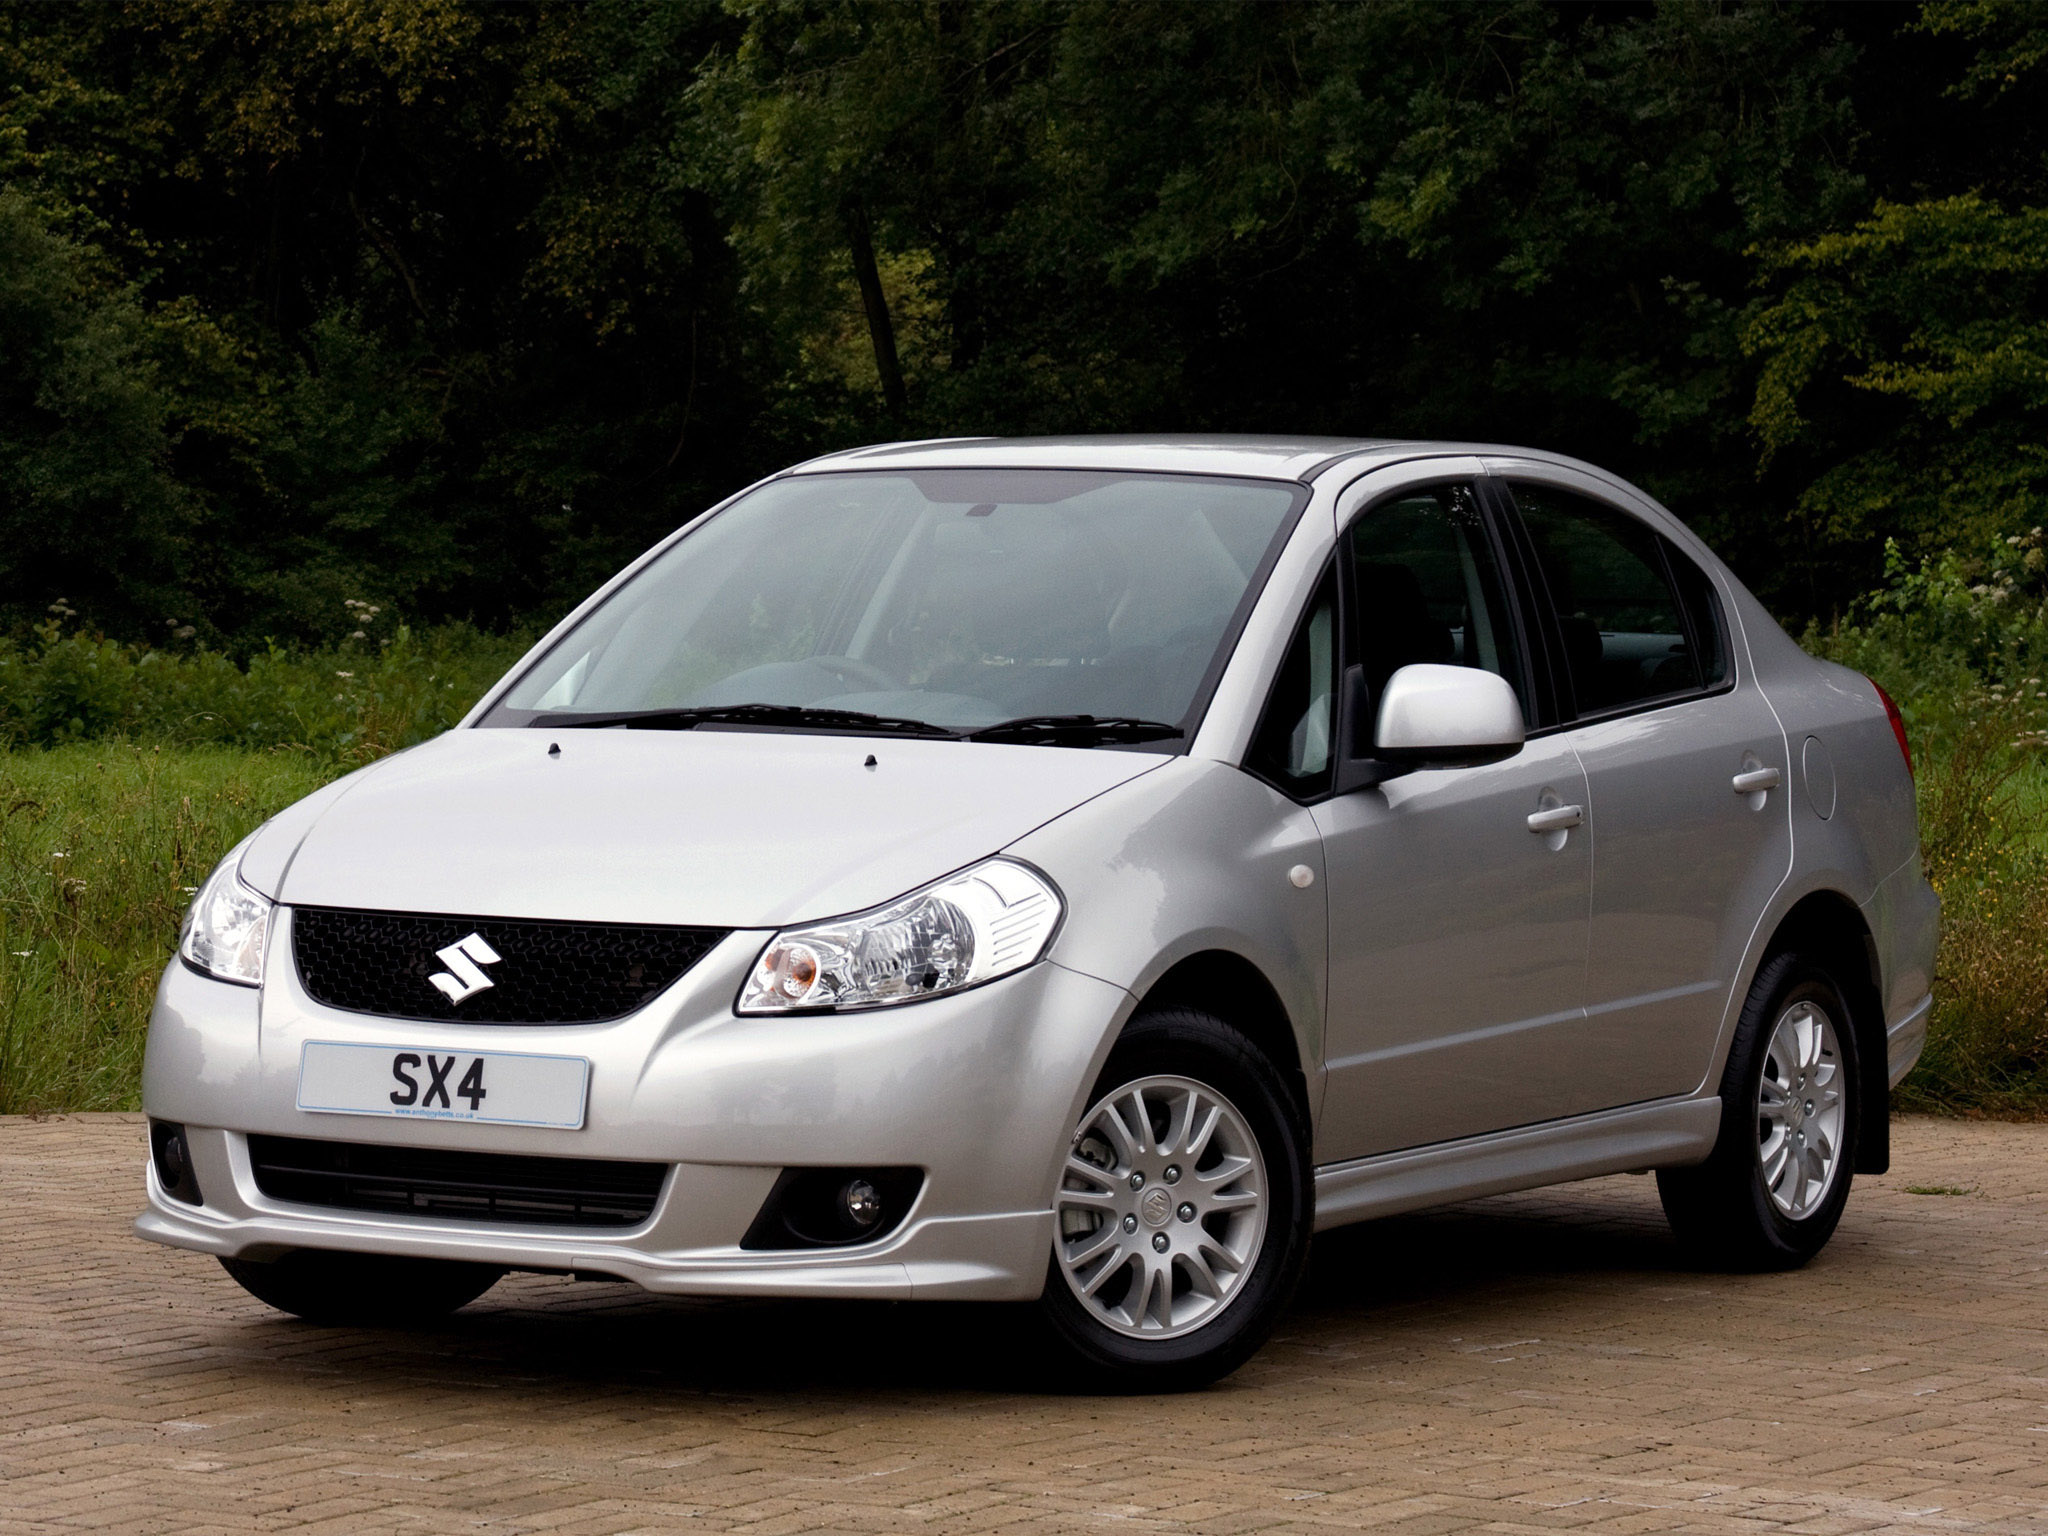 2012 suzuki sx4 sedan pictures information and specs. Black Bedroom Furniture Sets. Home Design Ideas